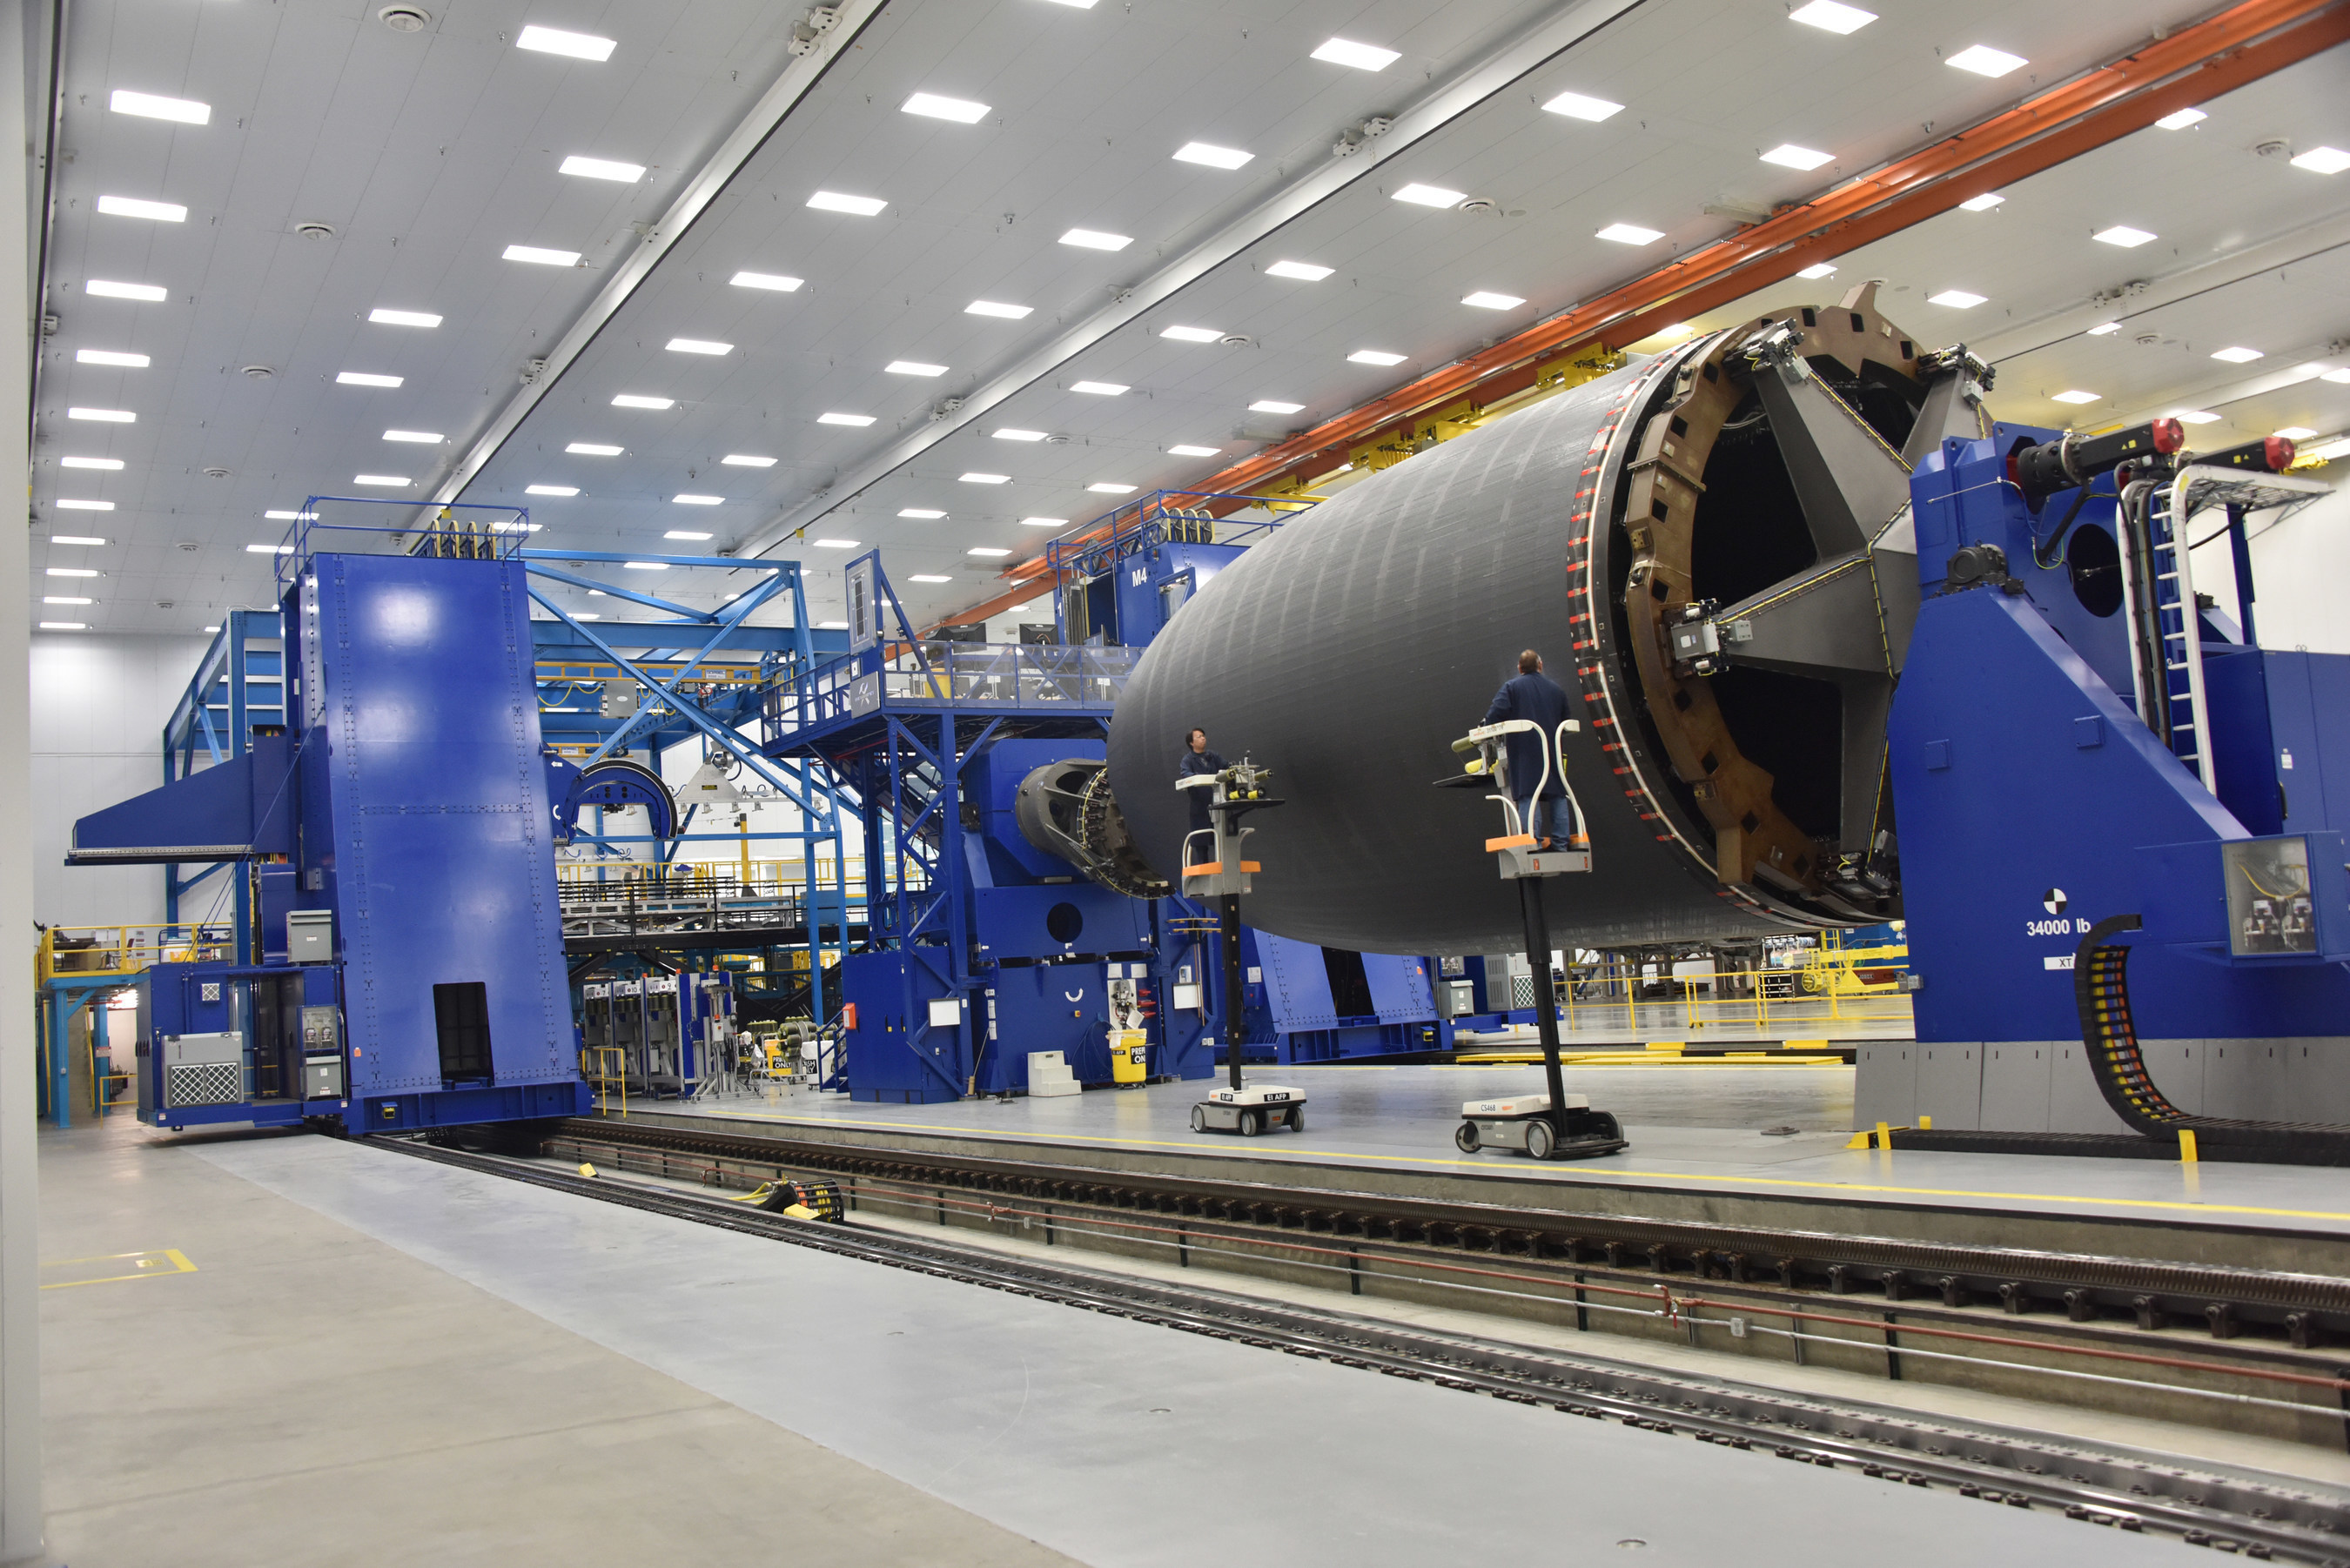 The autoclave addition is part of a 94,000 square-foot expansion to Spirit's Composite Fuselage Facility, where the company makes the carbon-fiber nose section for Boeing's 787 Dreamliner.